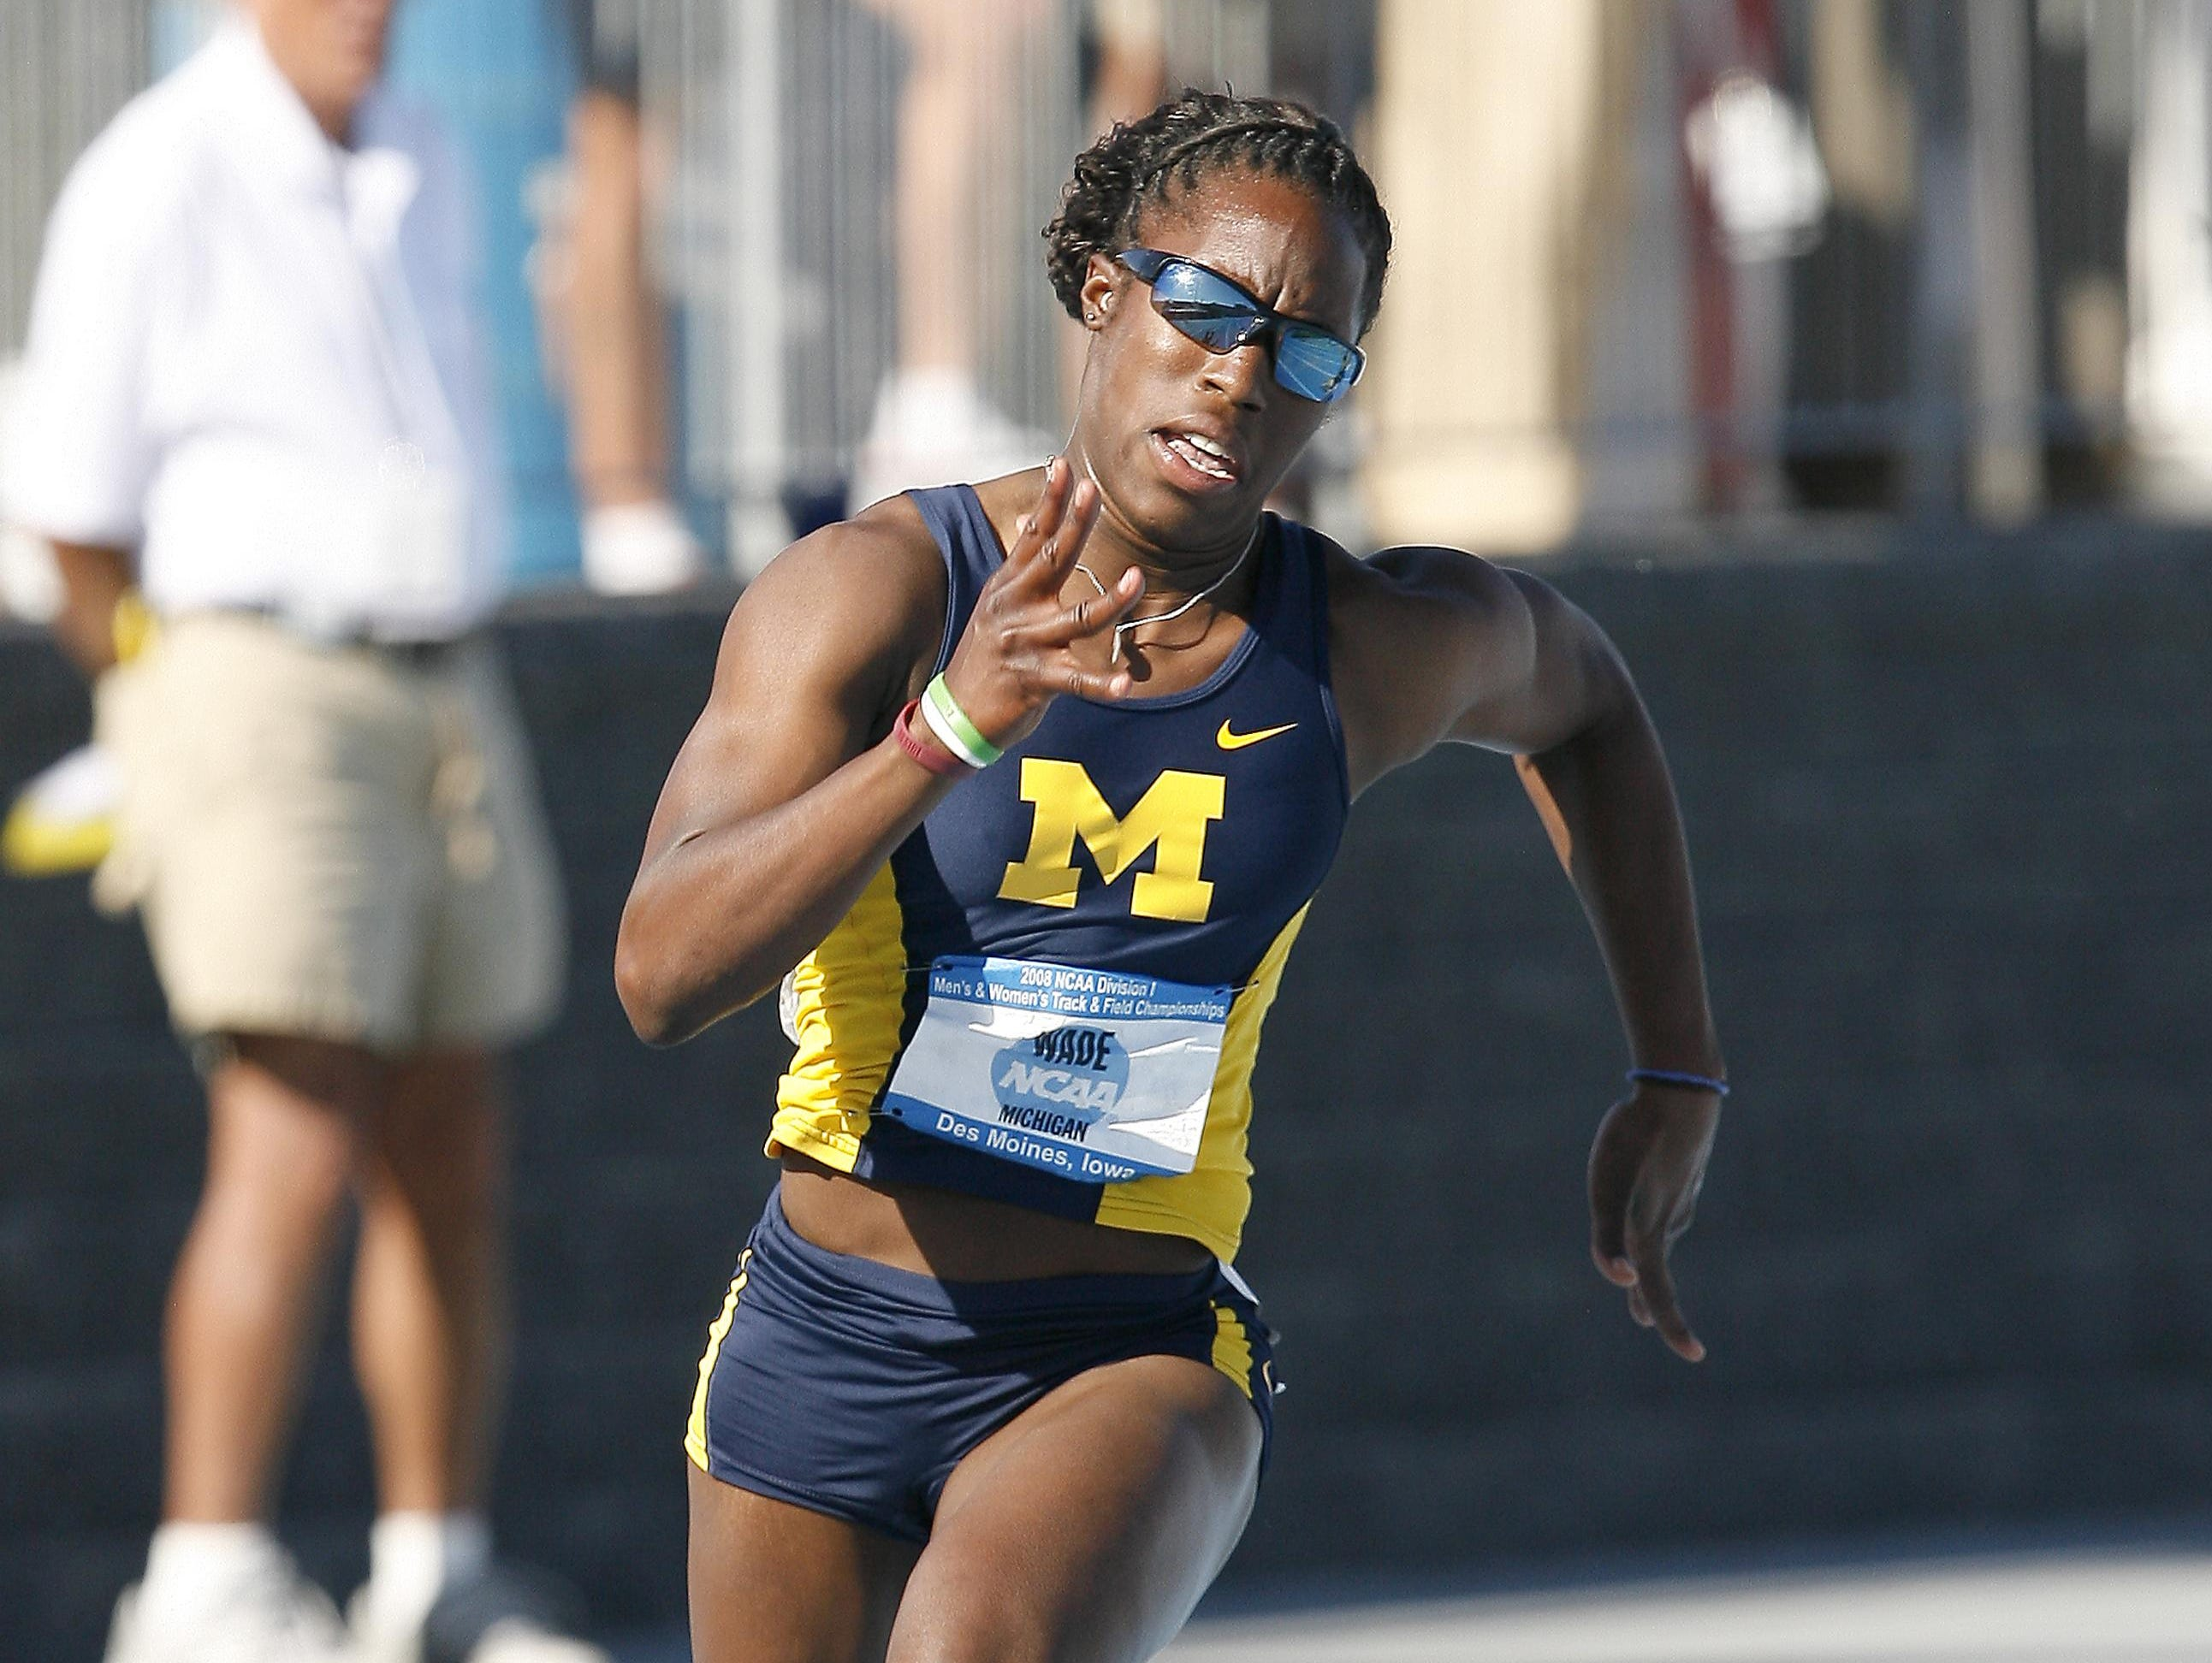 Bettie Wade was a Big Ten champion heptathlete and All-American at Michigan.